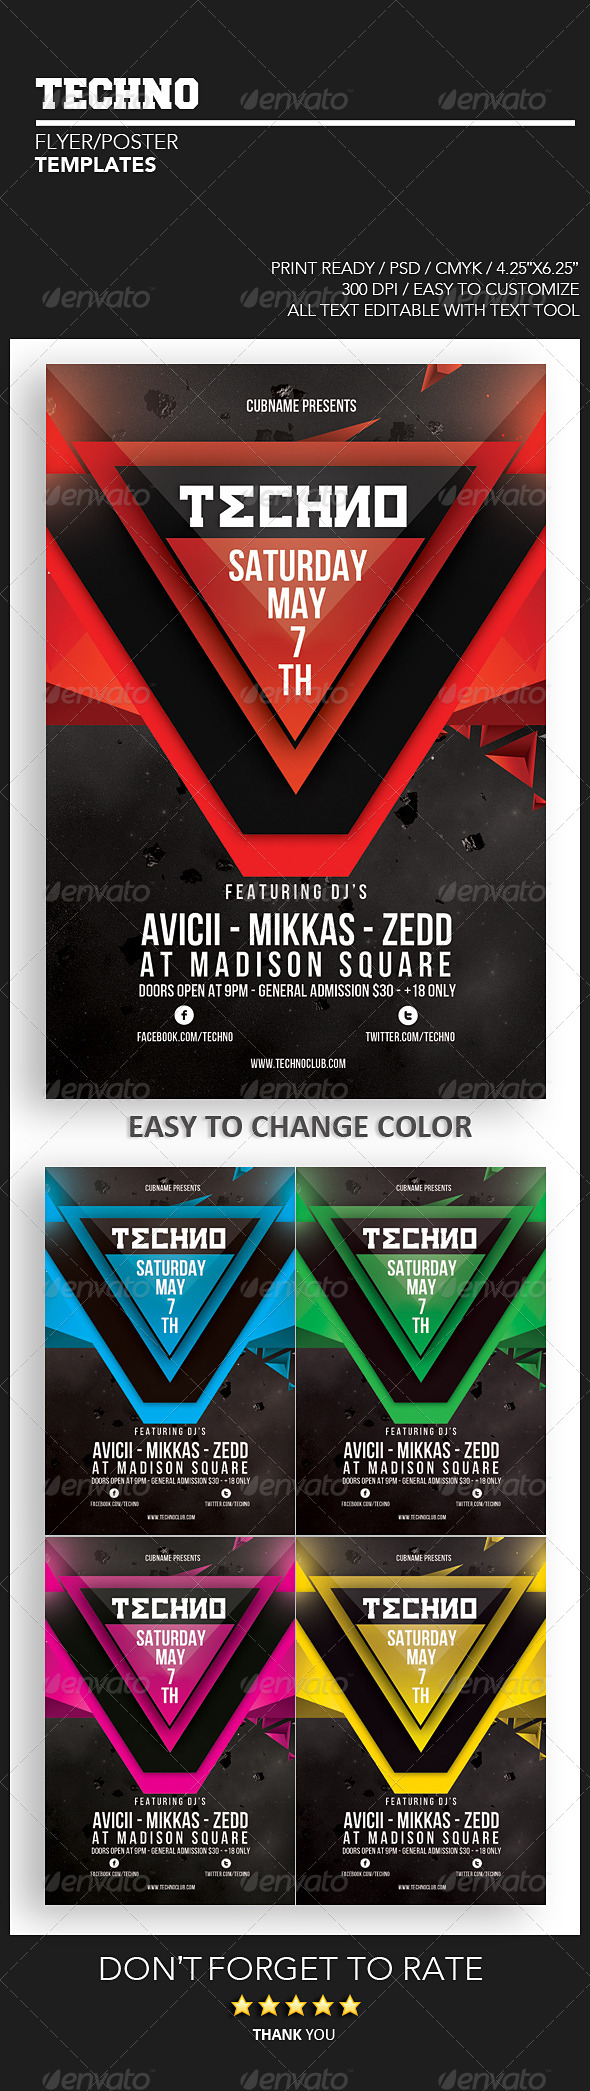 GraphicRiver Techno Flyer 4299198